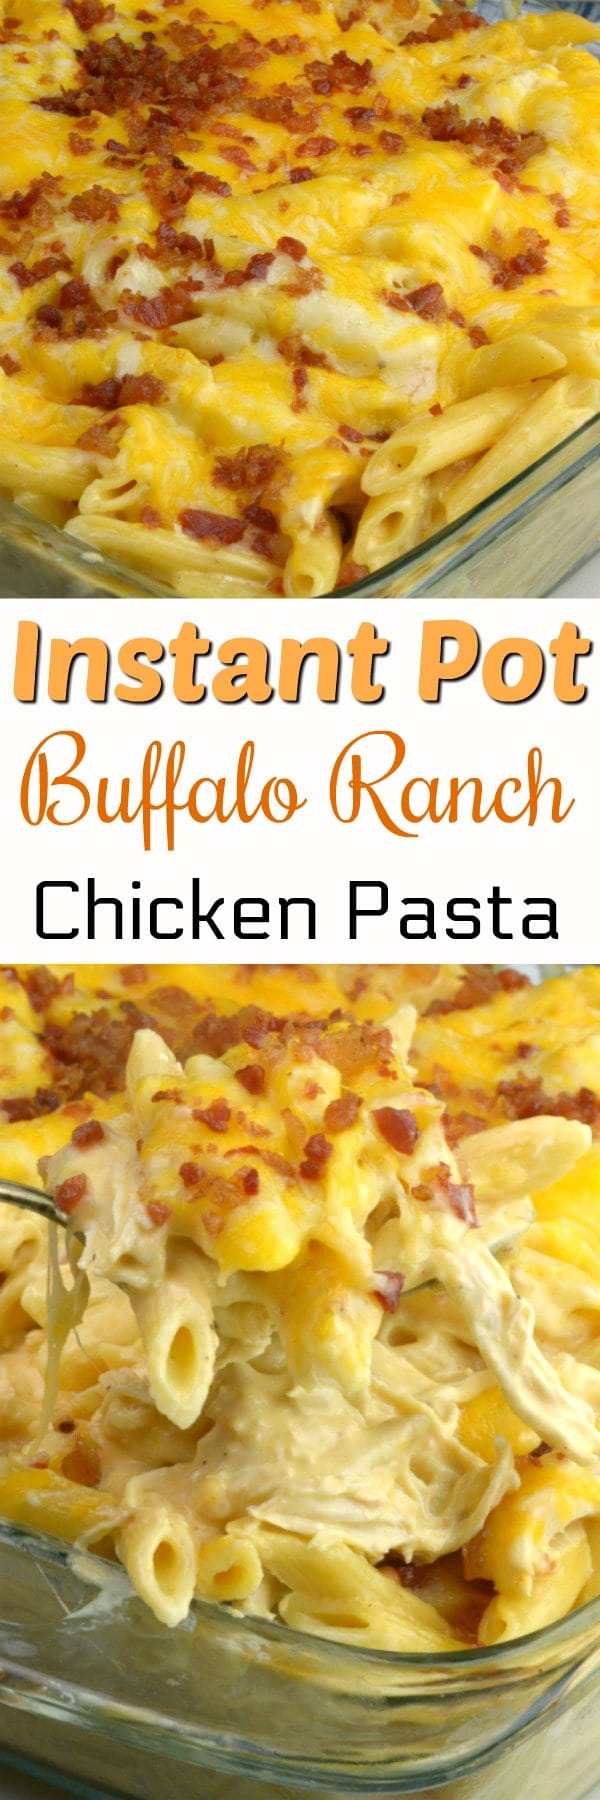 Looking for a chicken recipe that is super quick to whip up, and has tender chicken, creamy pasta, and offers a bit of a kick? That is exactly what you get with this Instant Pot buffalo chicken pasta.